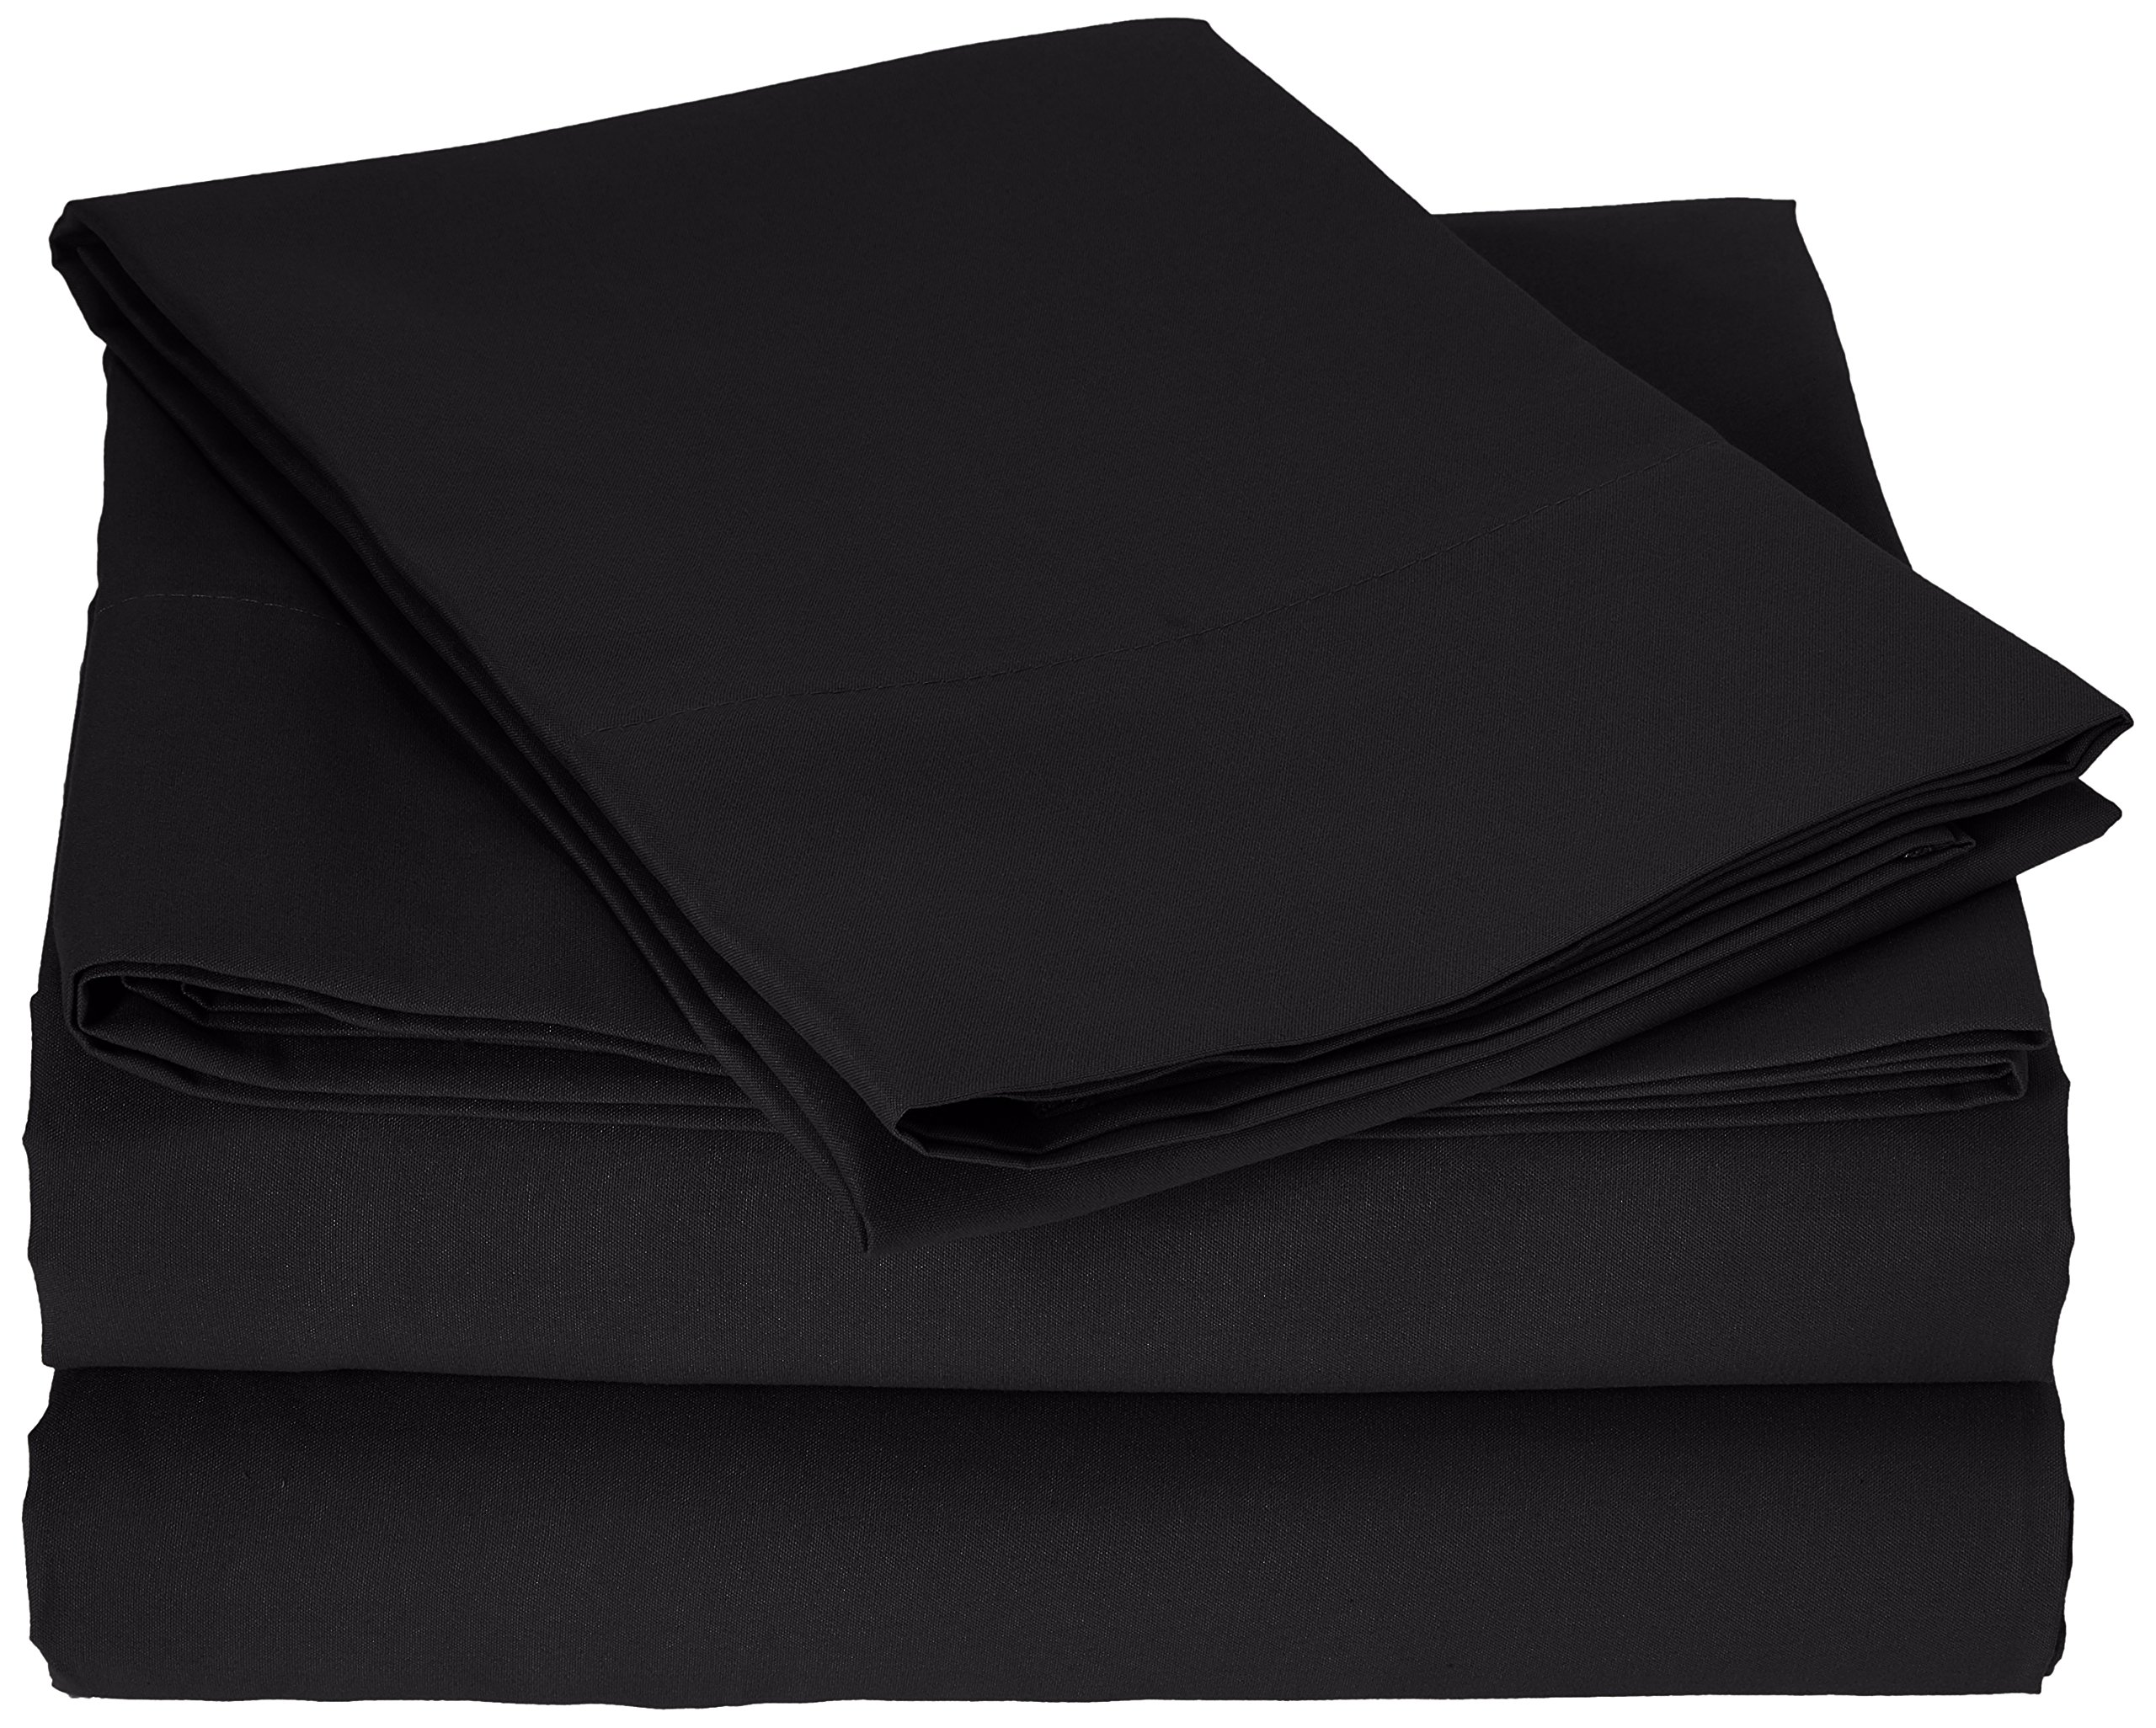 Truly Soft Sheet Sets for Everyday Use Black Twin Sheet by Pem America